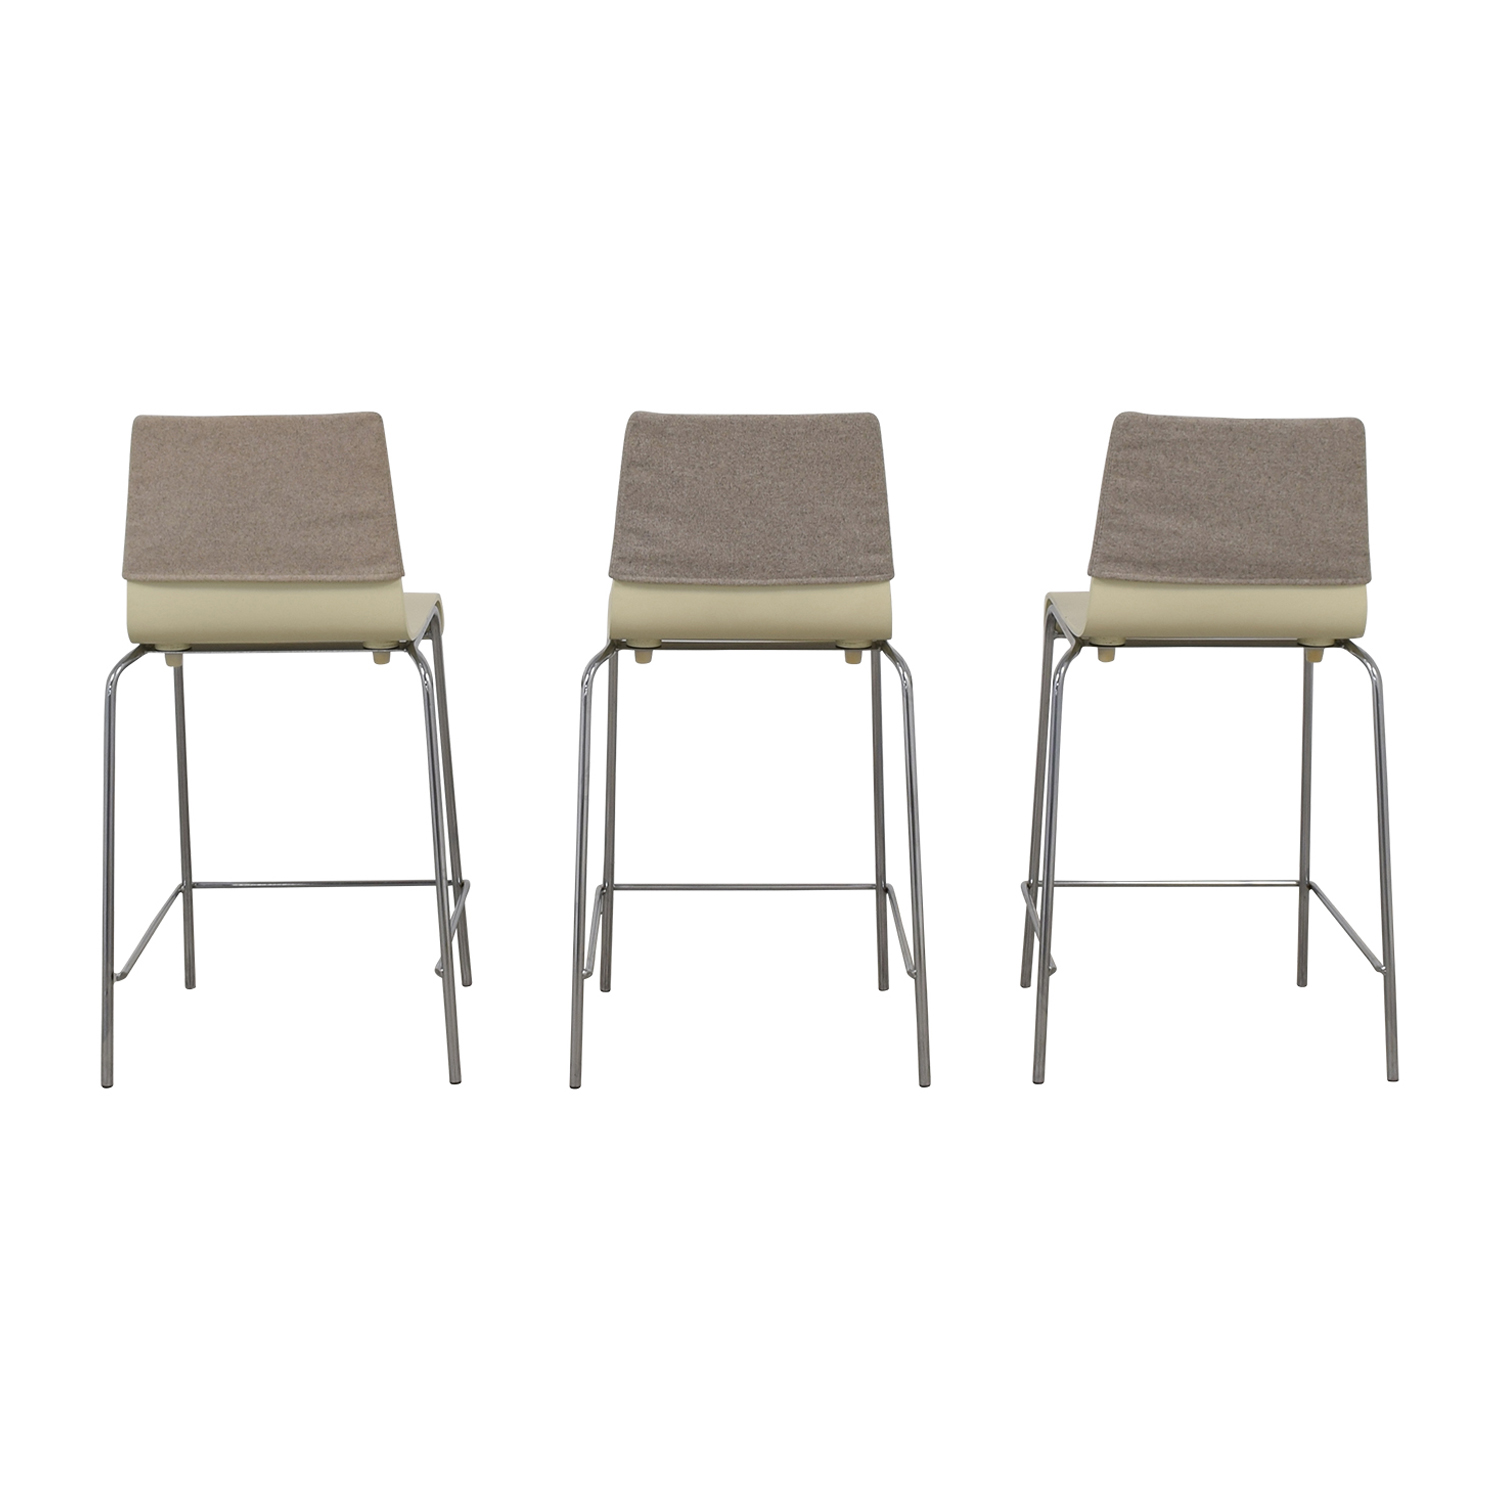 White and Grey Stools with Back Felt Pads